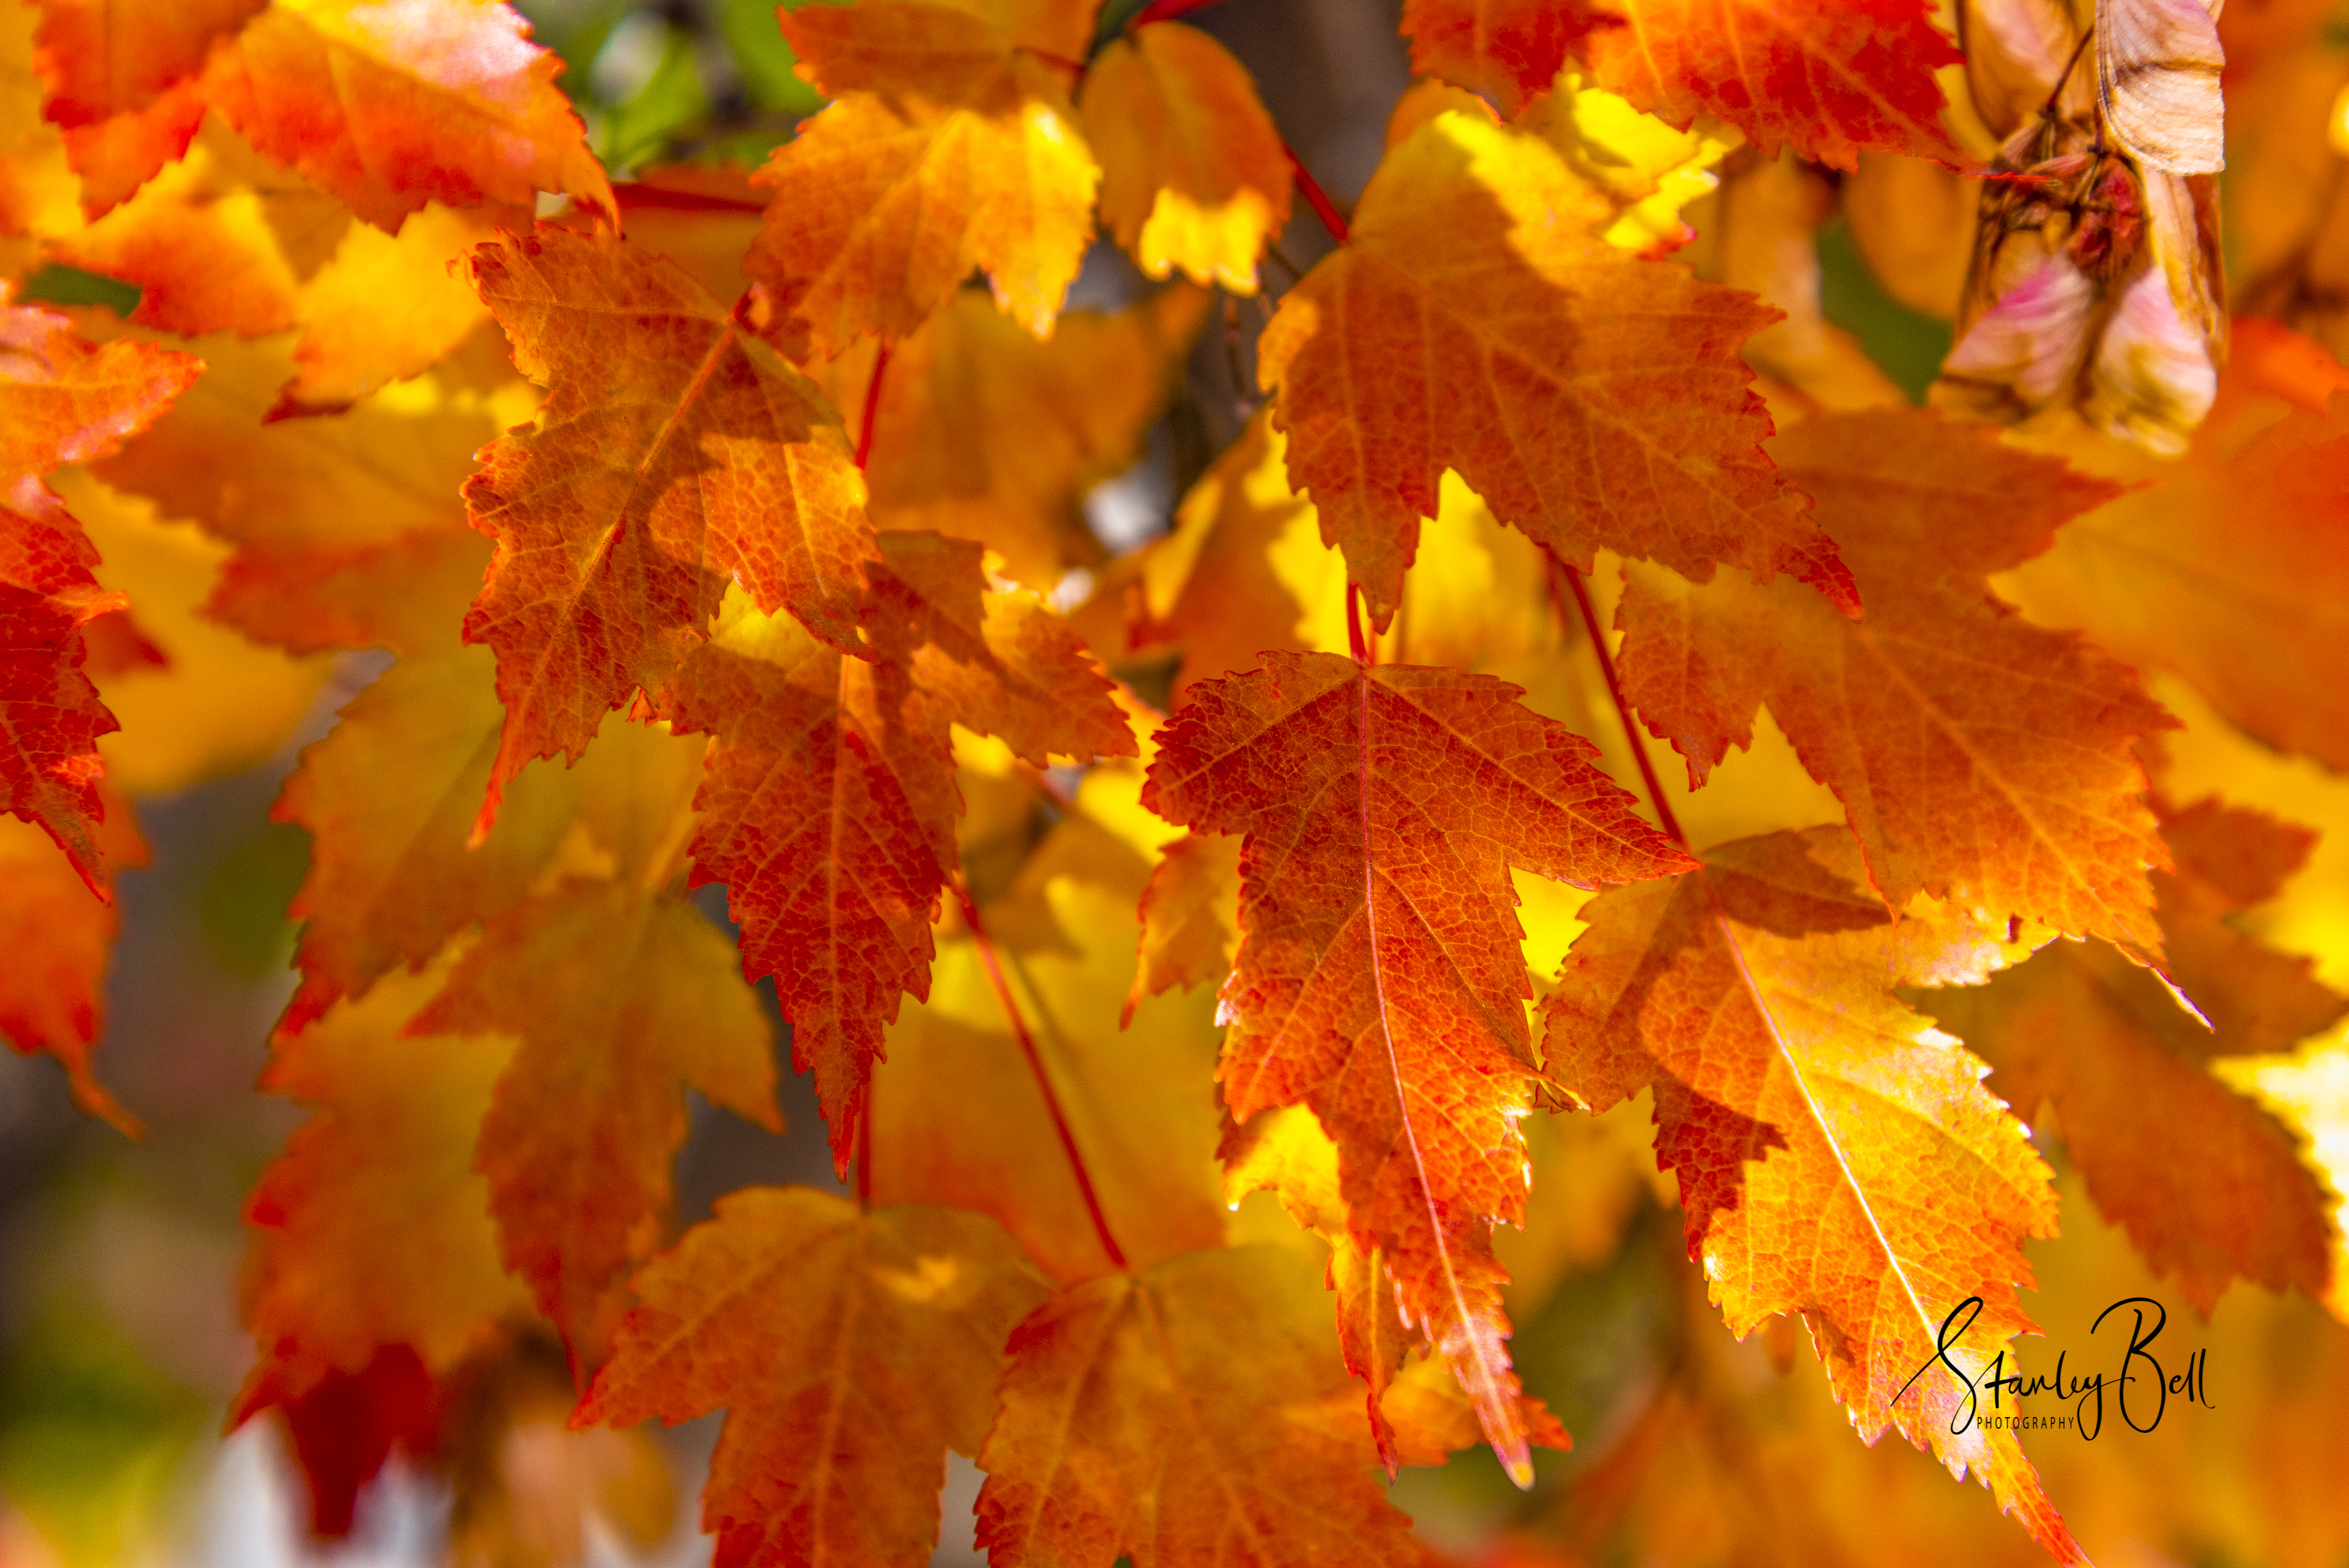 Manitoba Maple Leaves in Autumn Glory